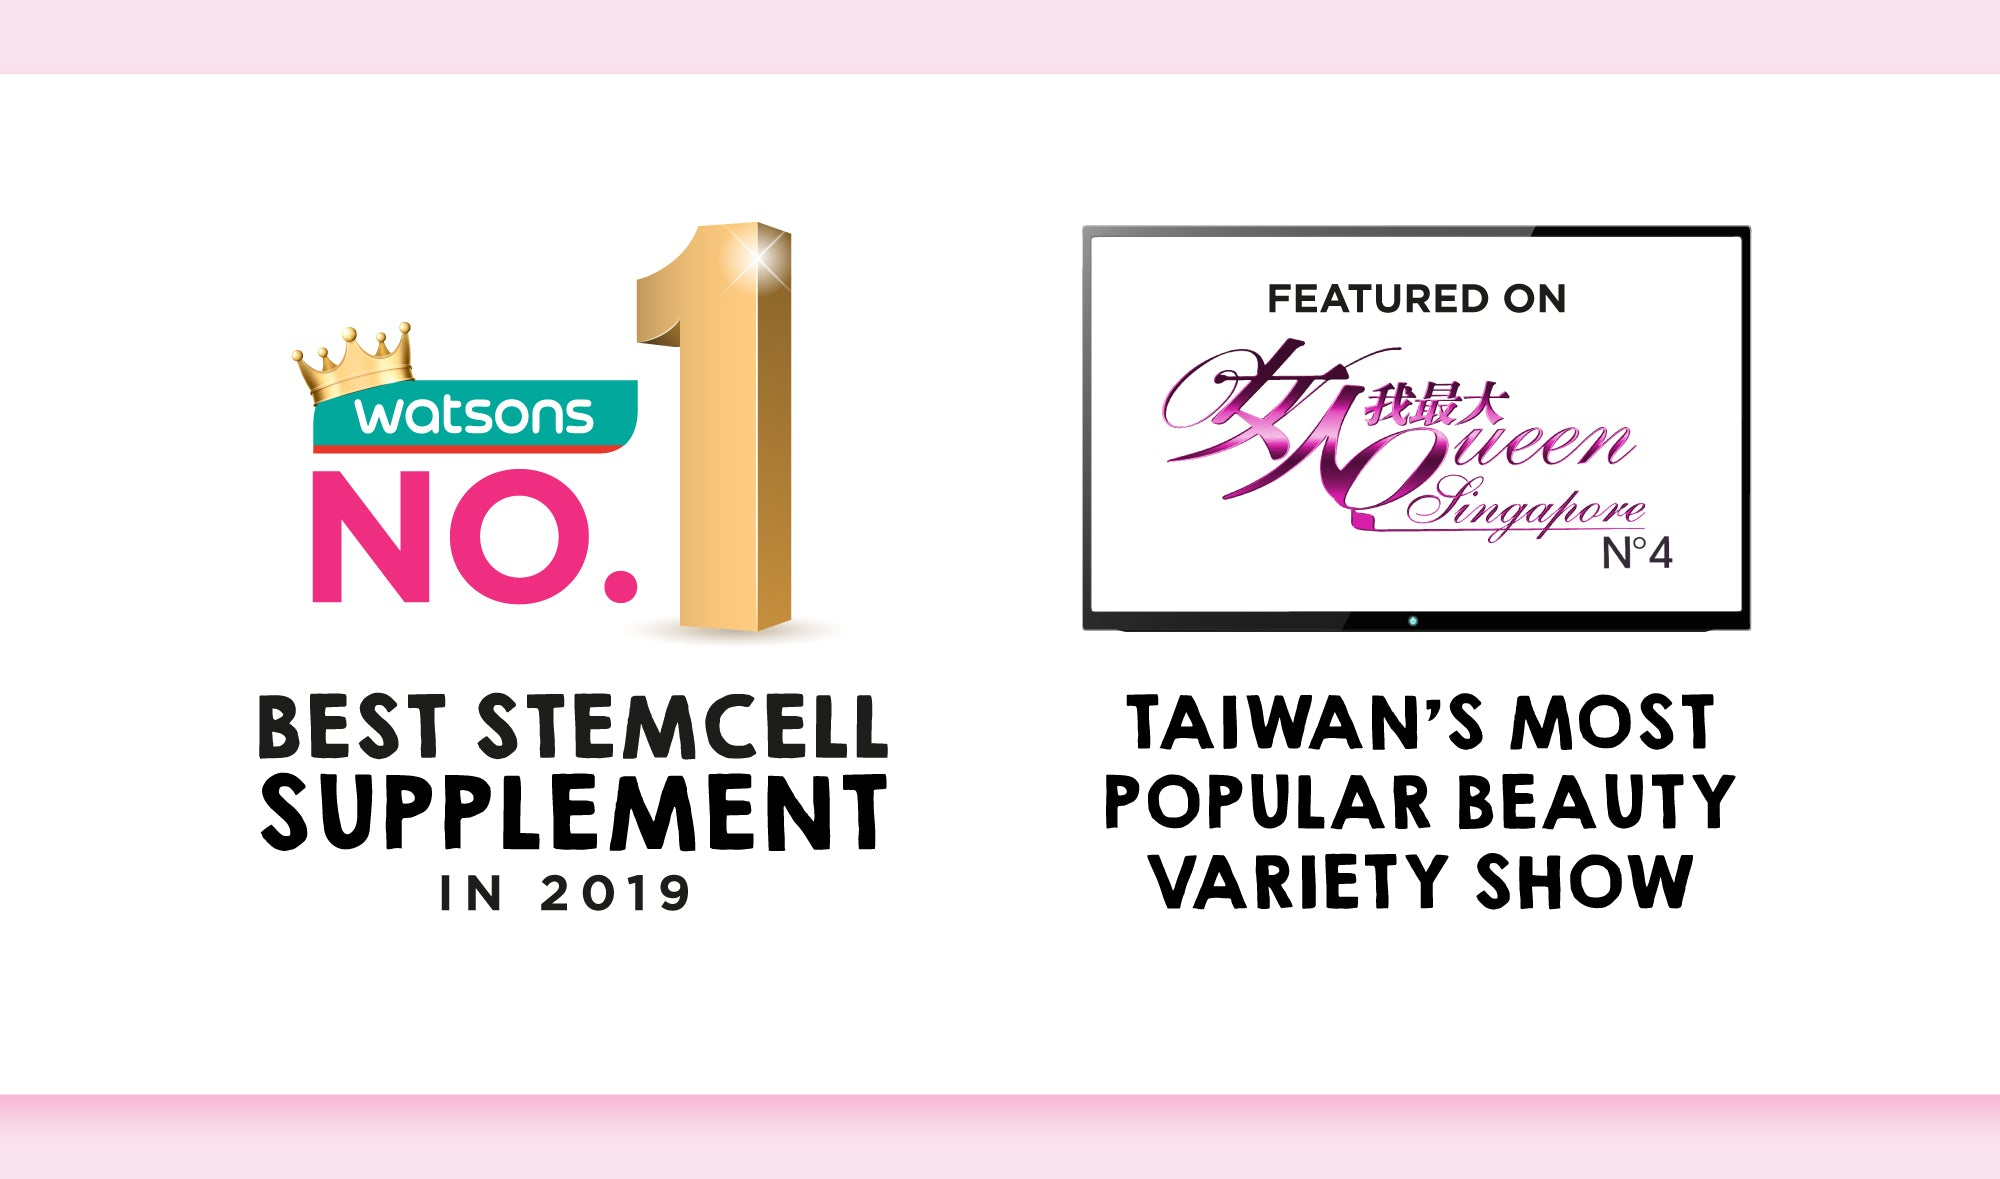 Avalon® Stemcell Beauty Drink is awarded the No.1 Best Stemcell Supplement by Watsons Singapore in 2019 and 2020. It is also featured in Taiwan's Most Popular Beauty Variety Show.